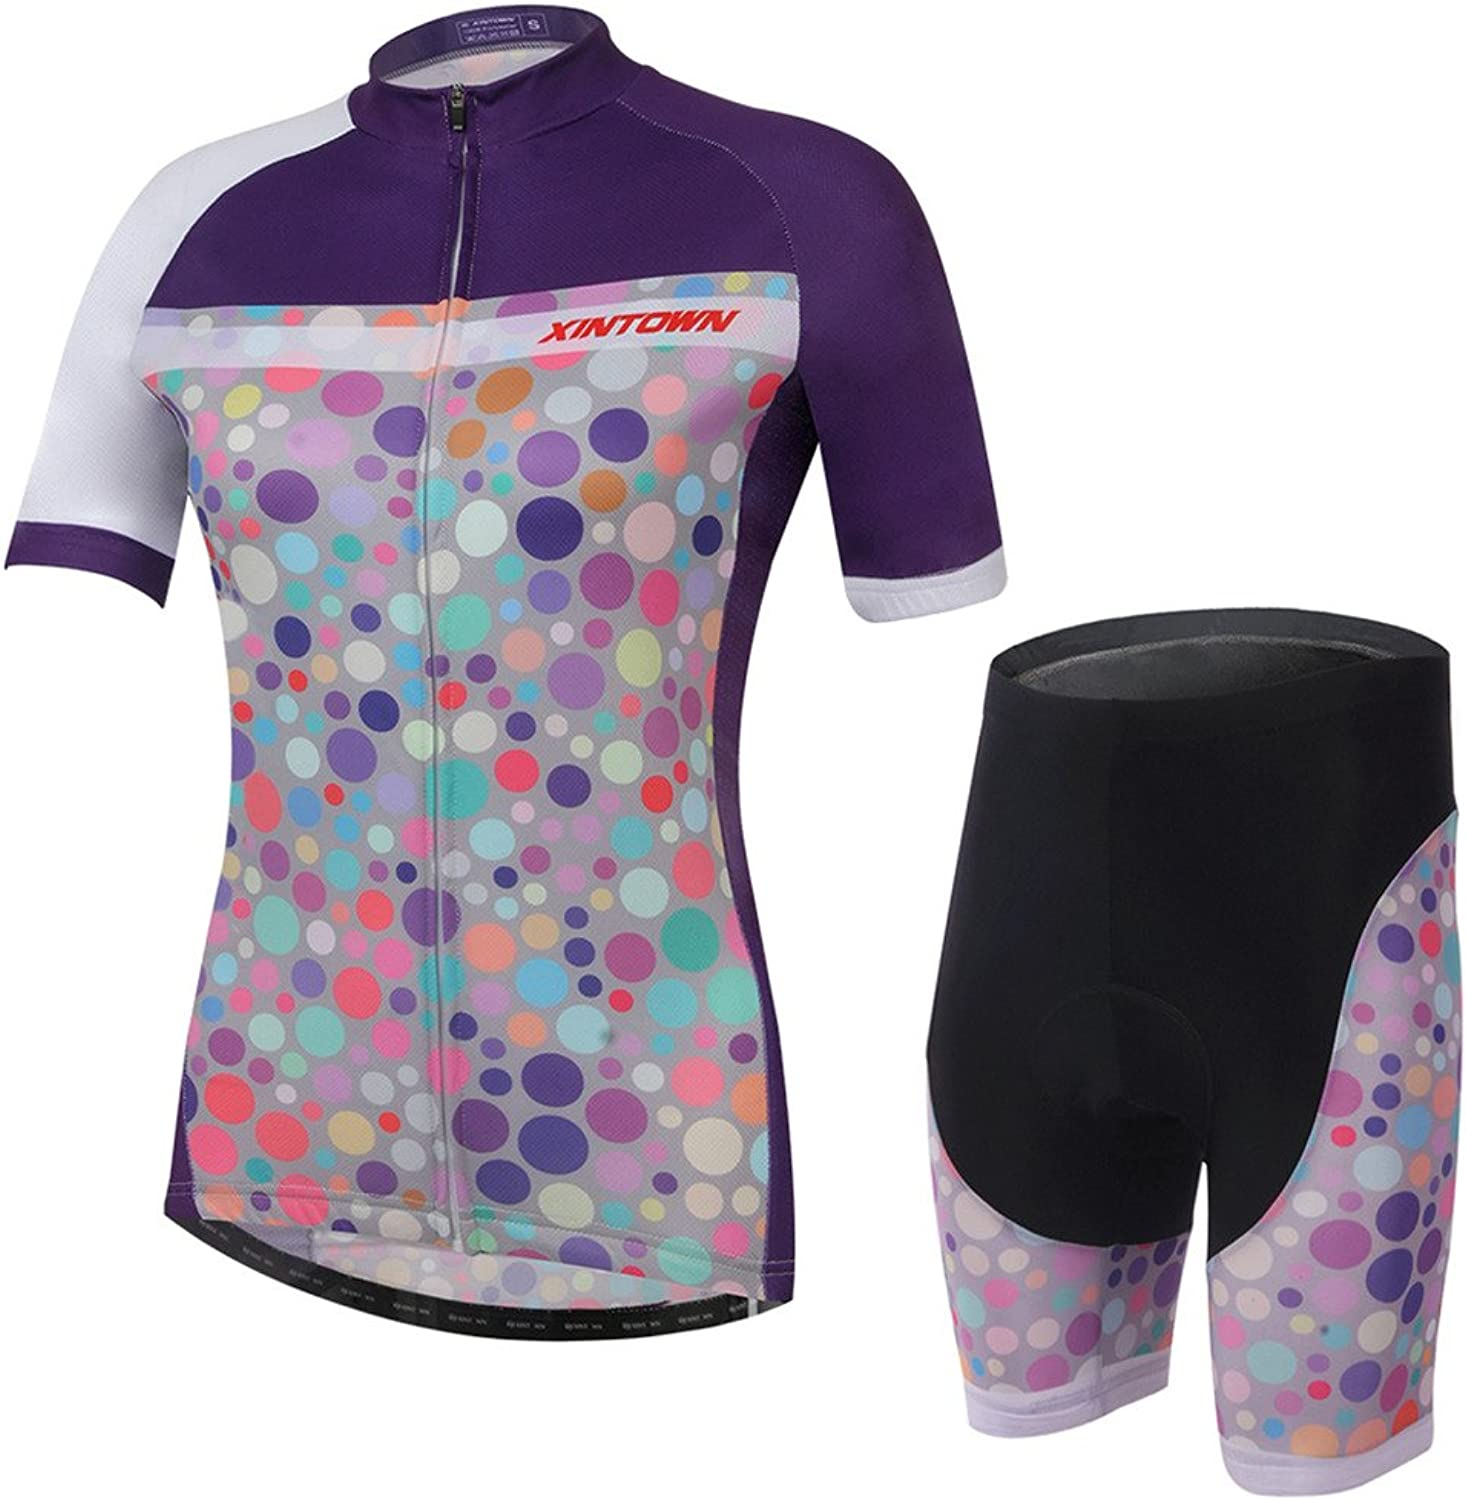 XINTOWN Women's Sports Short Sleeve Cycling Jersey and 3D Padded Shorts